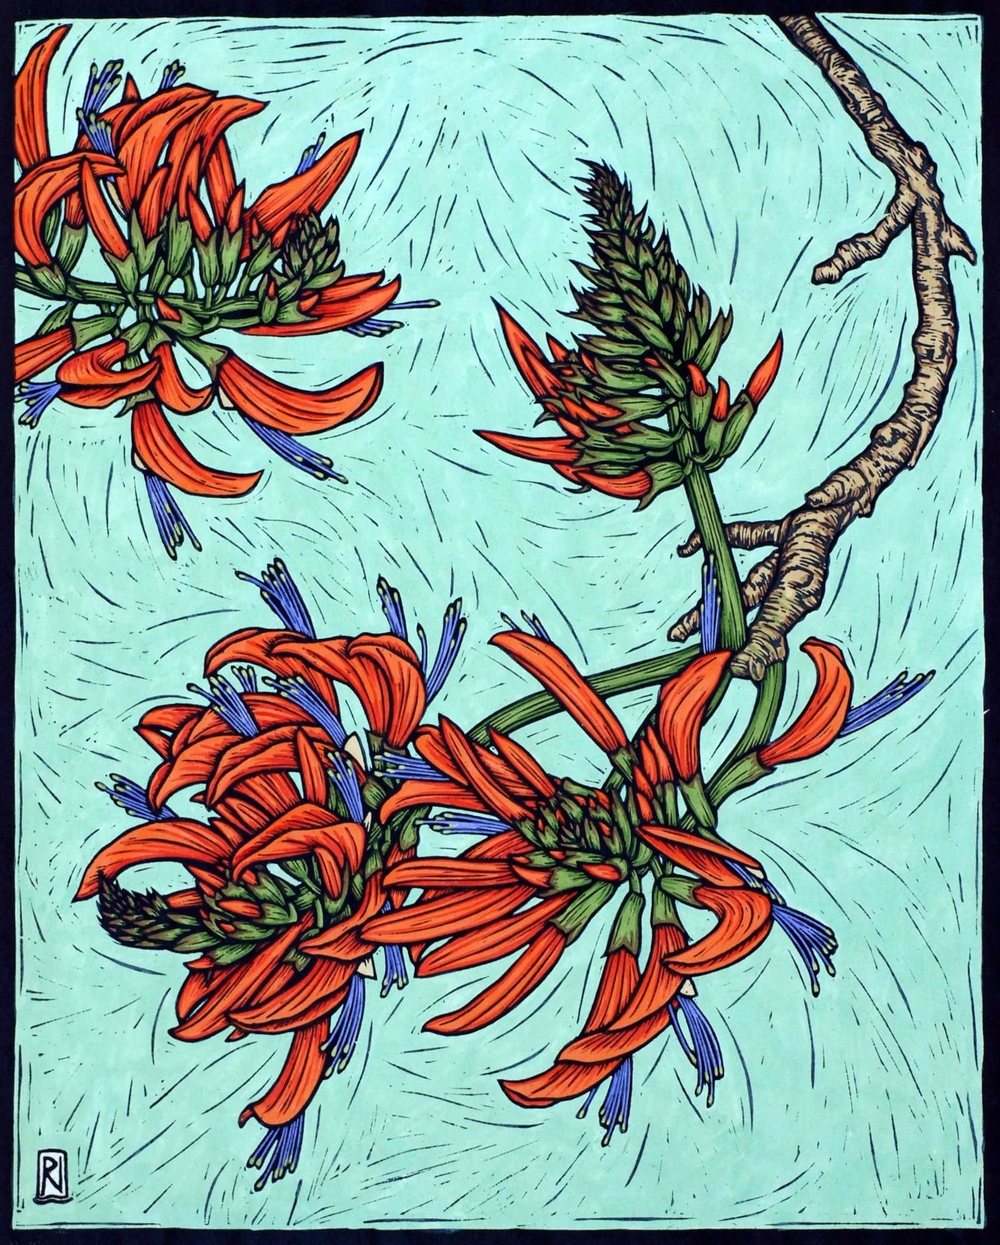 CORAL TREE  43.5 X 35.5 CM    EDITION OF 50  HAND COLOURED LINOCUT ON HANDMADE JAPANESE PAPER  $1,050